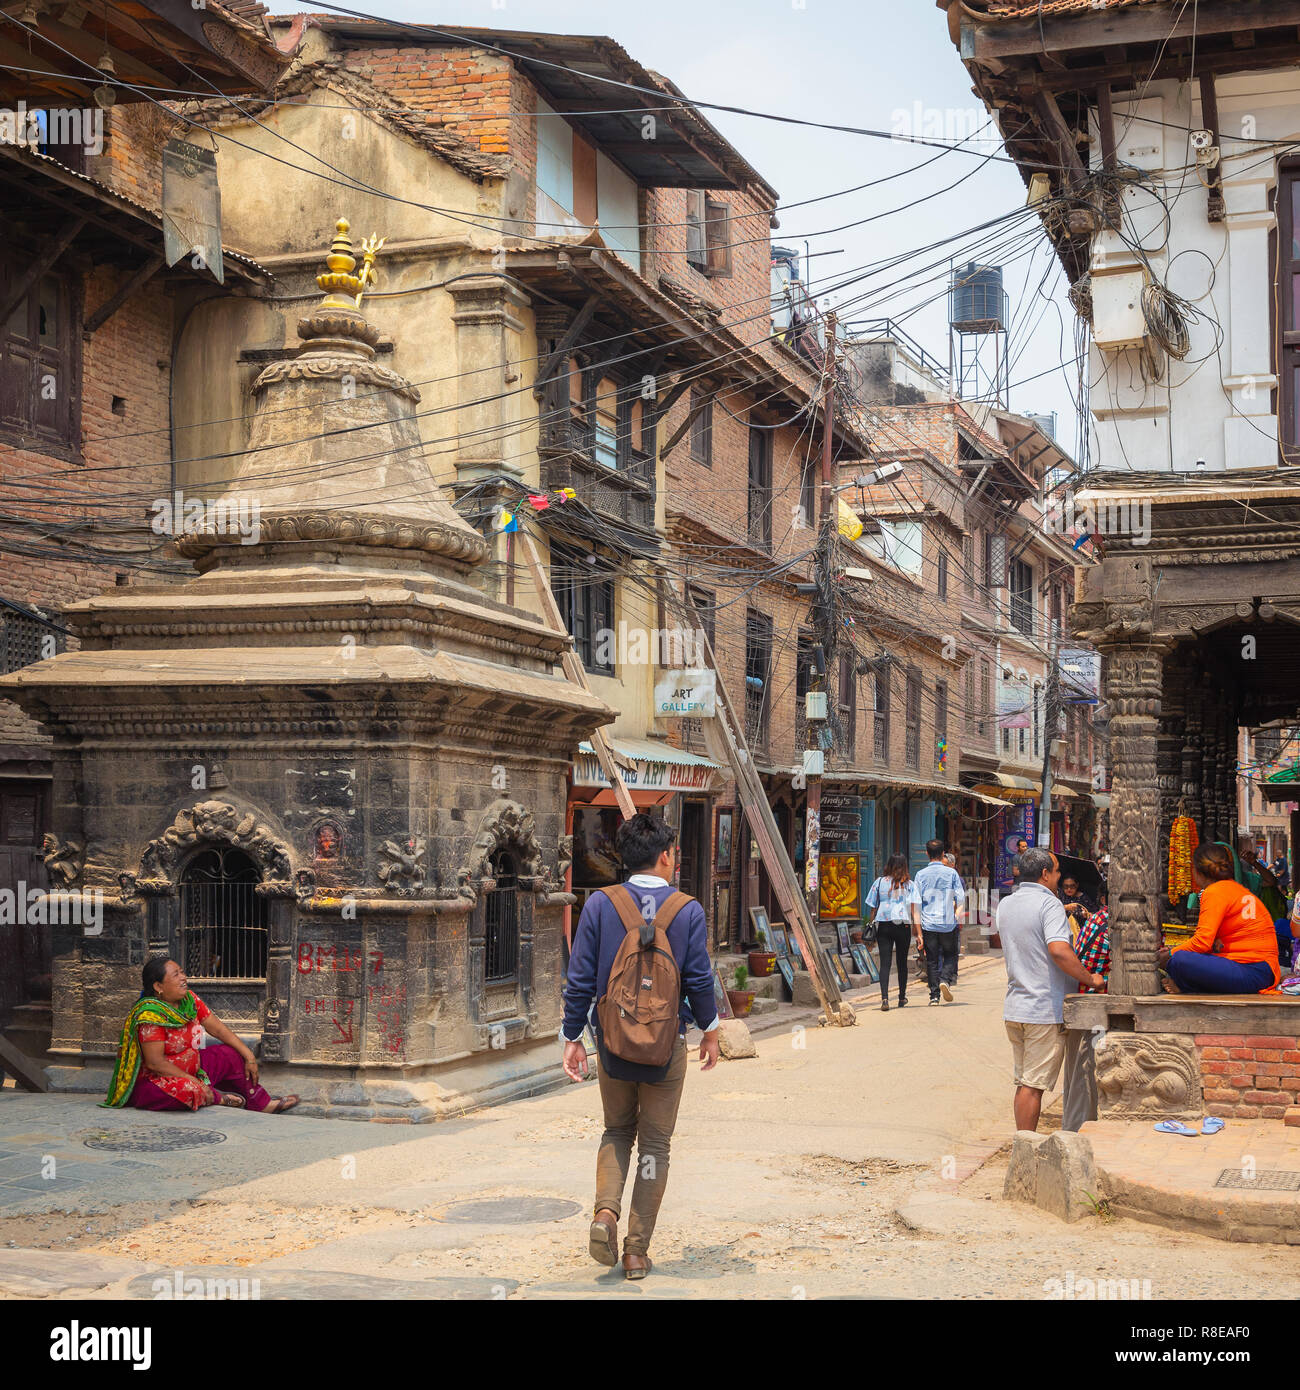 Young man walking past small temple and city street in Patan, Lalitpur,  Nepal. Stock Photo